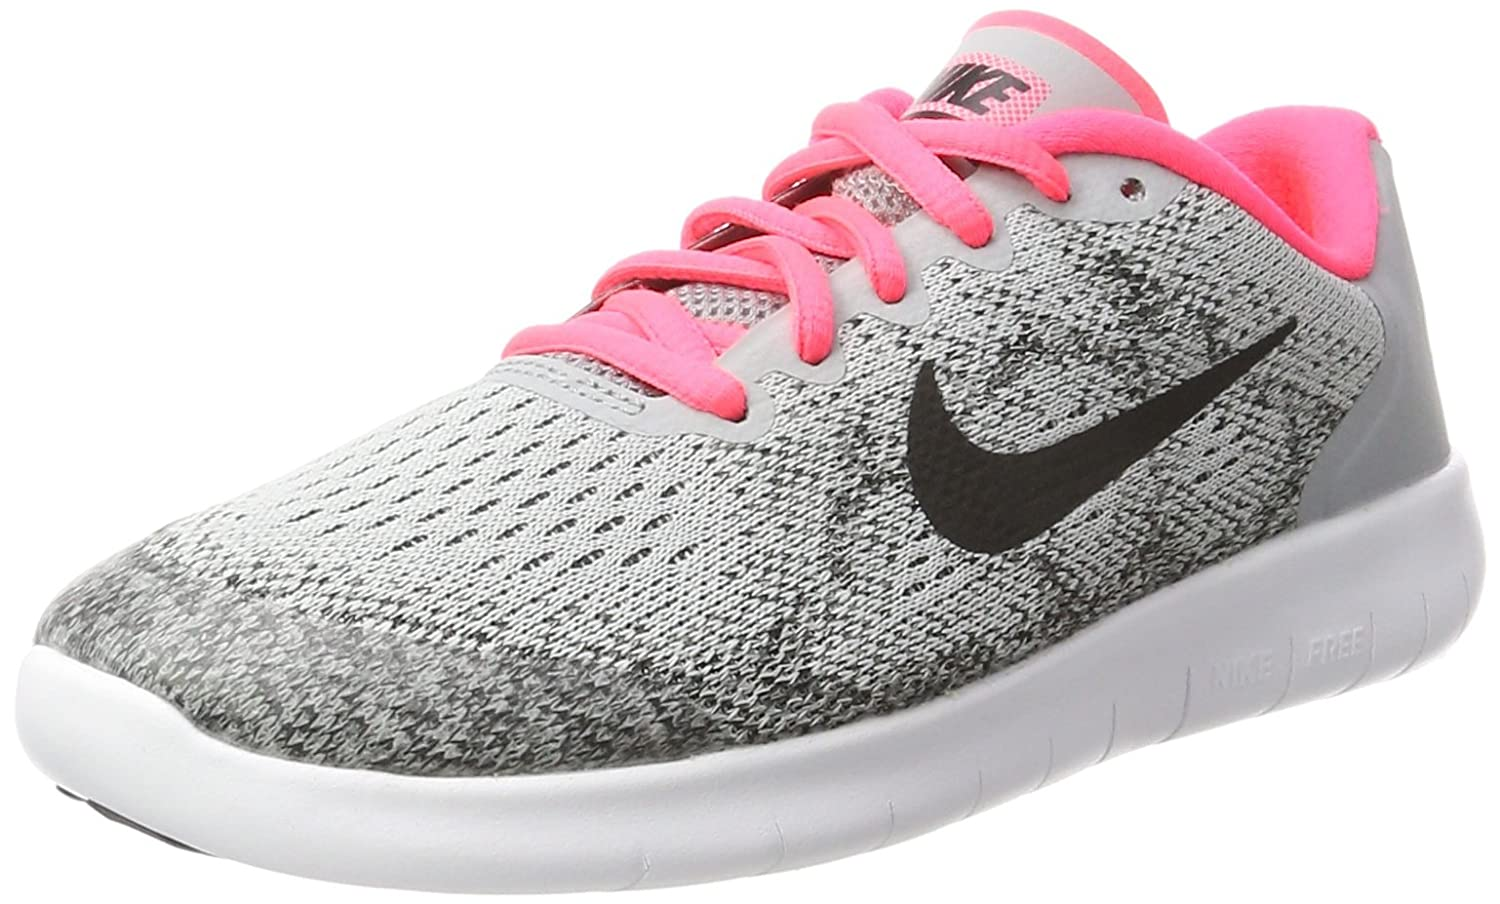 d25d56b2a59a1 Nike Kids Free Rn 2017 (GS) Wolf Grey Black Racer Pink Running Shoe 6 Kids  US  Buy Online at Low Prices in India - Amazon.in